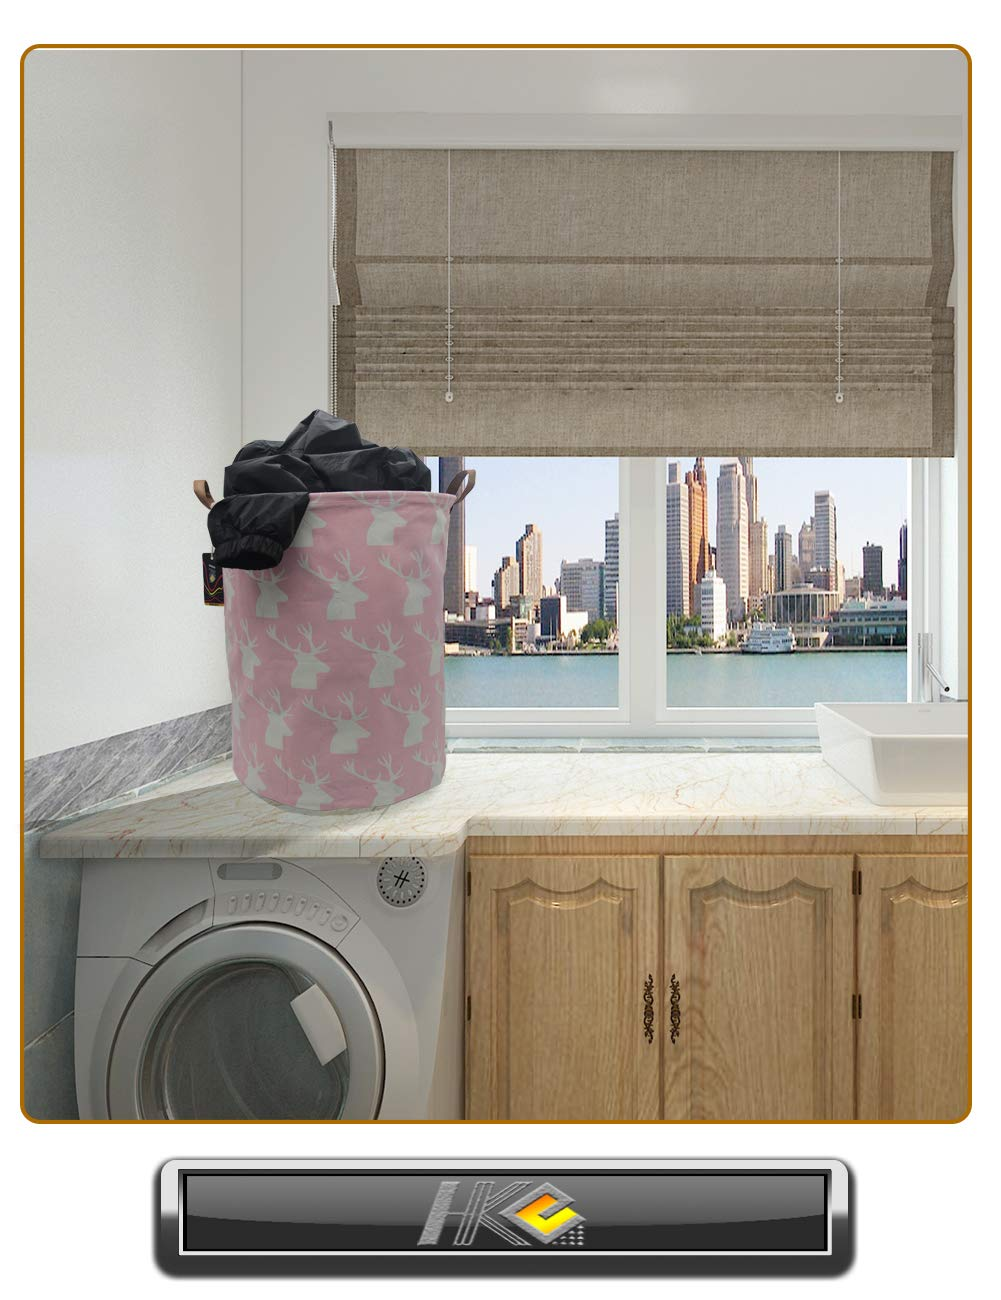 Gray Triangle Bedroom HKEC 19.7/'/' Waterproof Foldable Storage Bin Dirty Clothes Laundry Basket Baby Hamper Gift Baskets Canvas Organizer Basket for Laundry Hamper Toy Bins Clothes